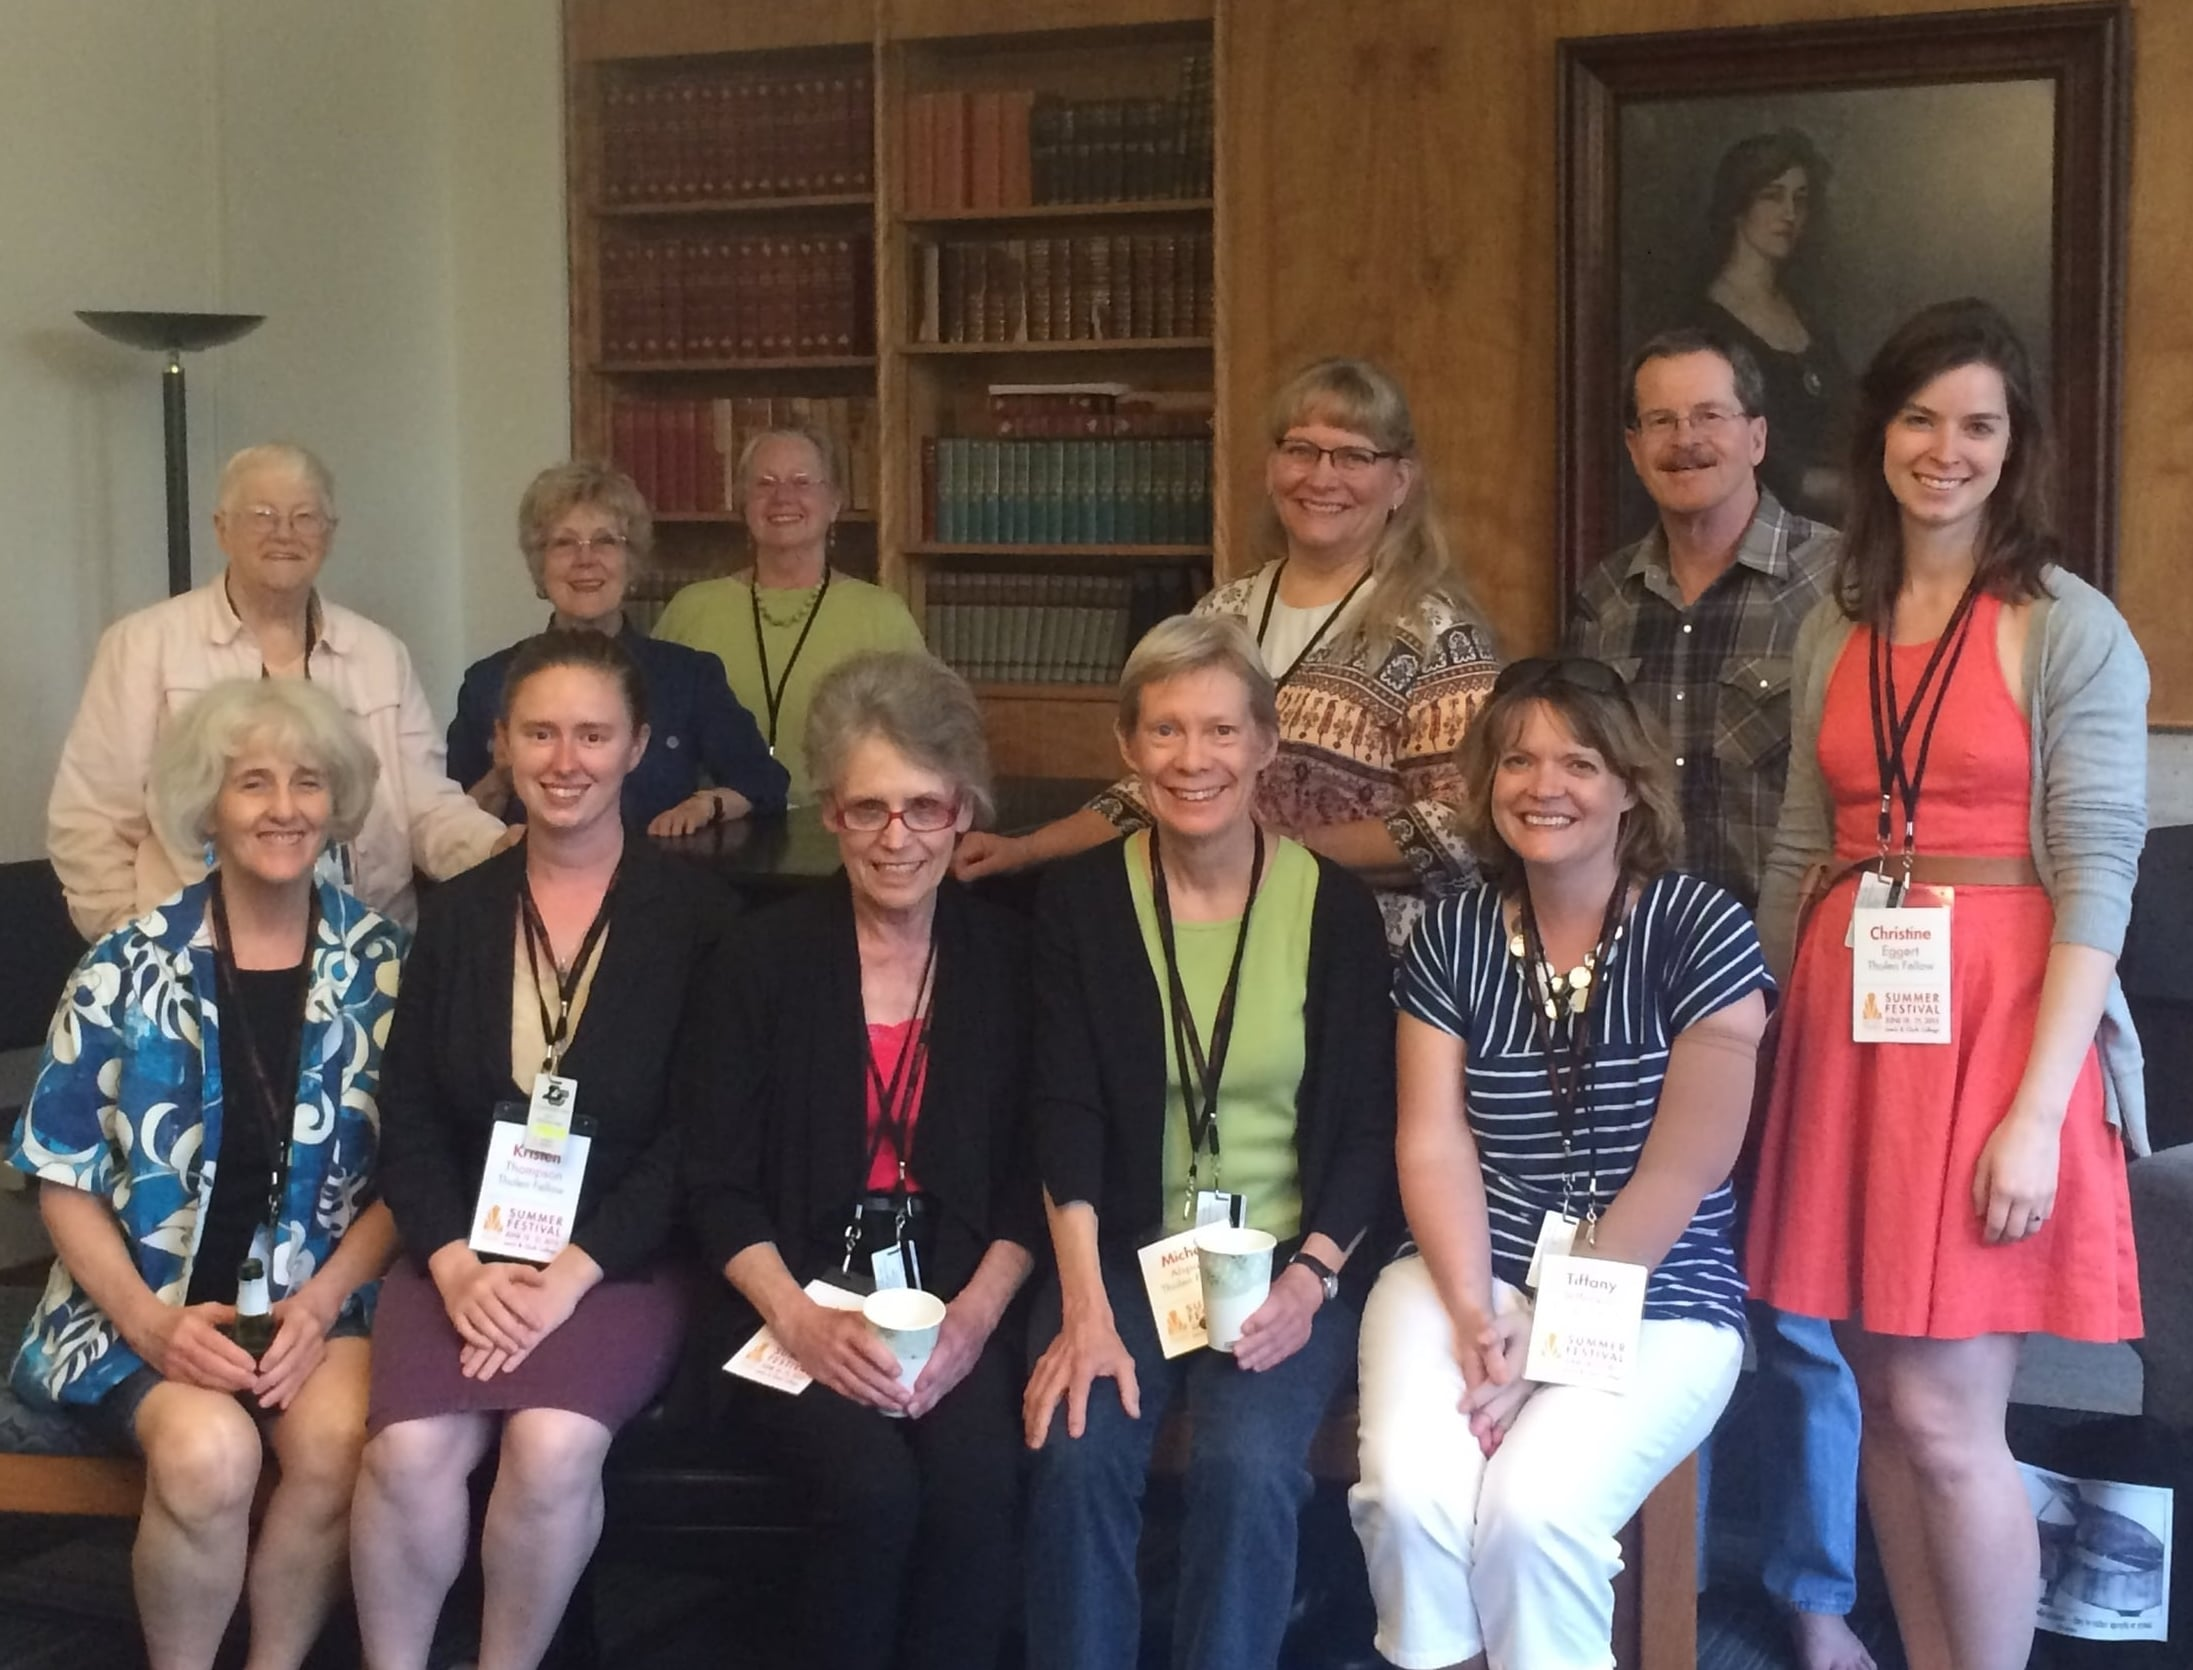 The inaugural recipients of the Tholen Fellowship at the 2015 PPI Summer Festival at Lewis & Clark College.  Standing from left to right: Rita Warton, Helen Jones, Mary Venard, Marsha Hall, Pat Daly  Seated from left to right: Jessica Treon, Kristen Thompson, Mary Lee Scoville, Michele Alspach, Tiffany Jefferson